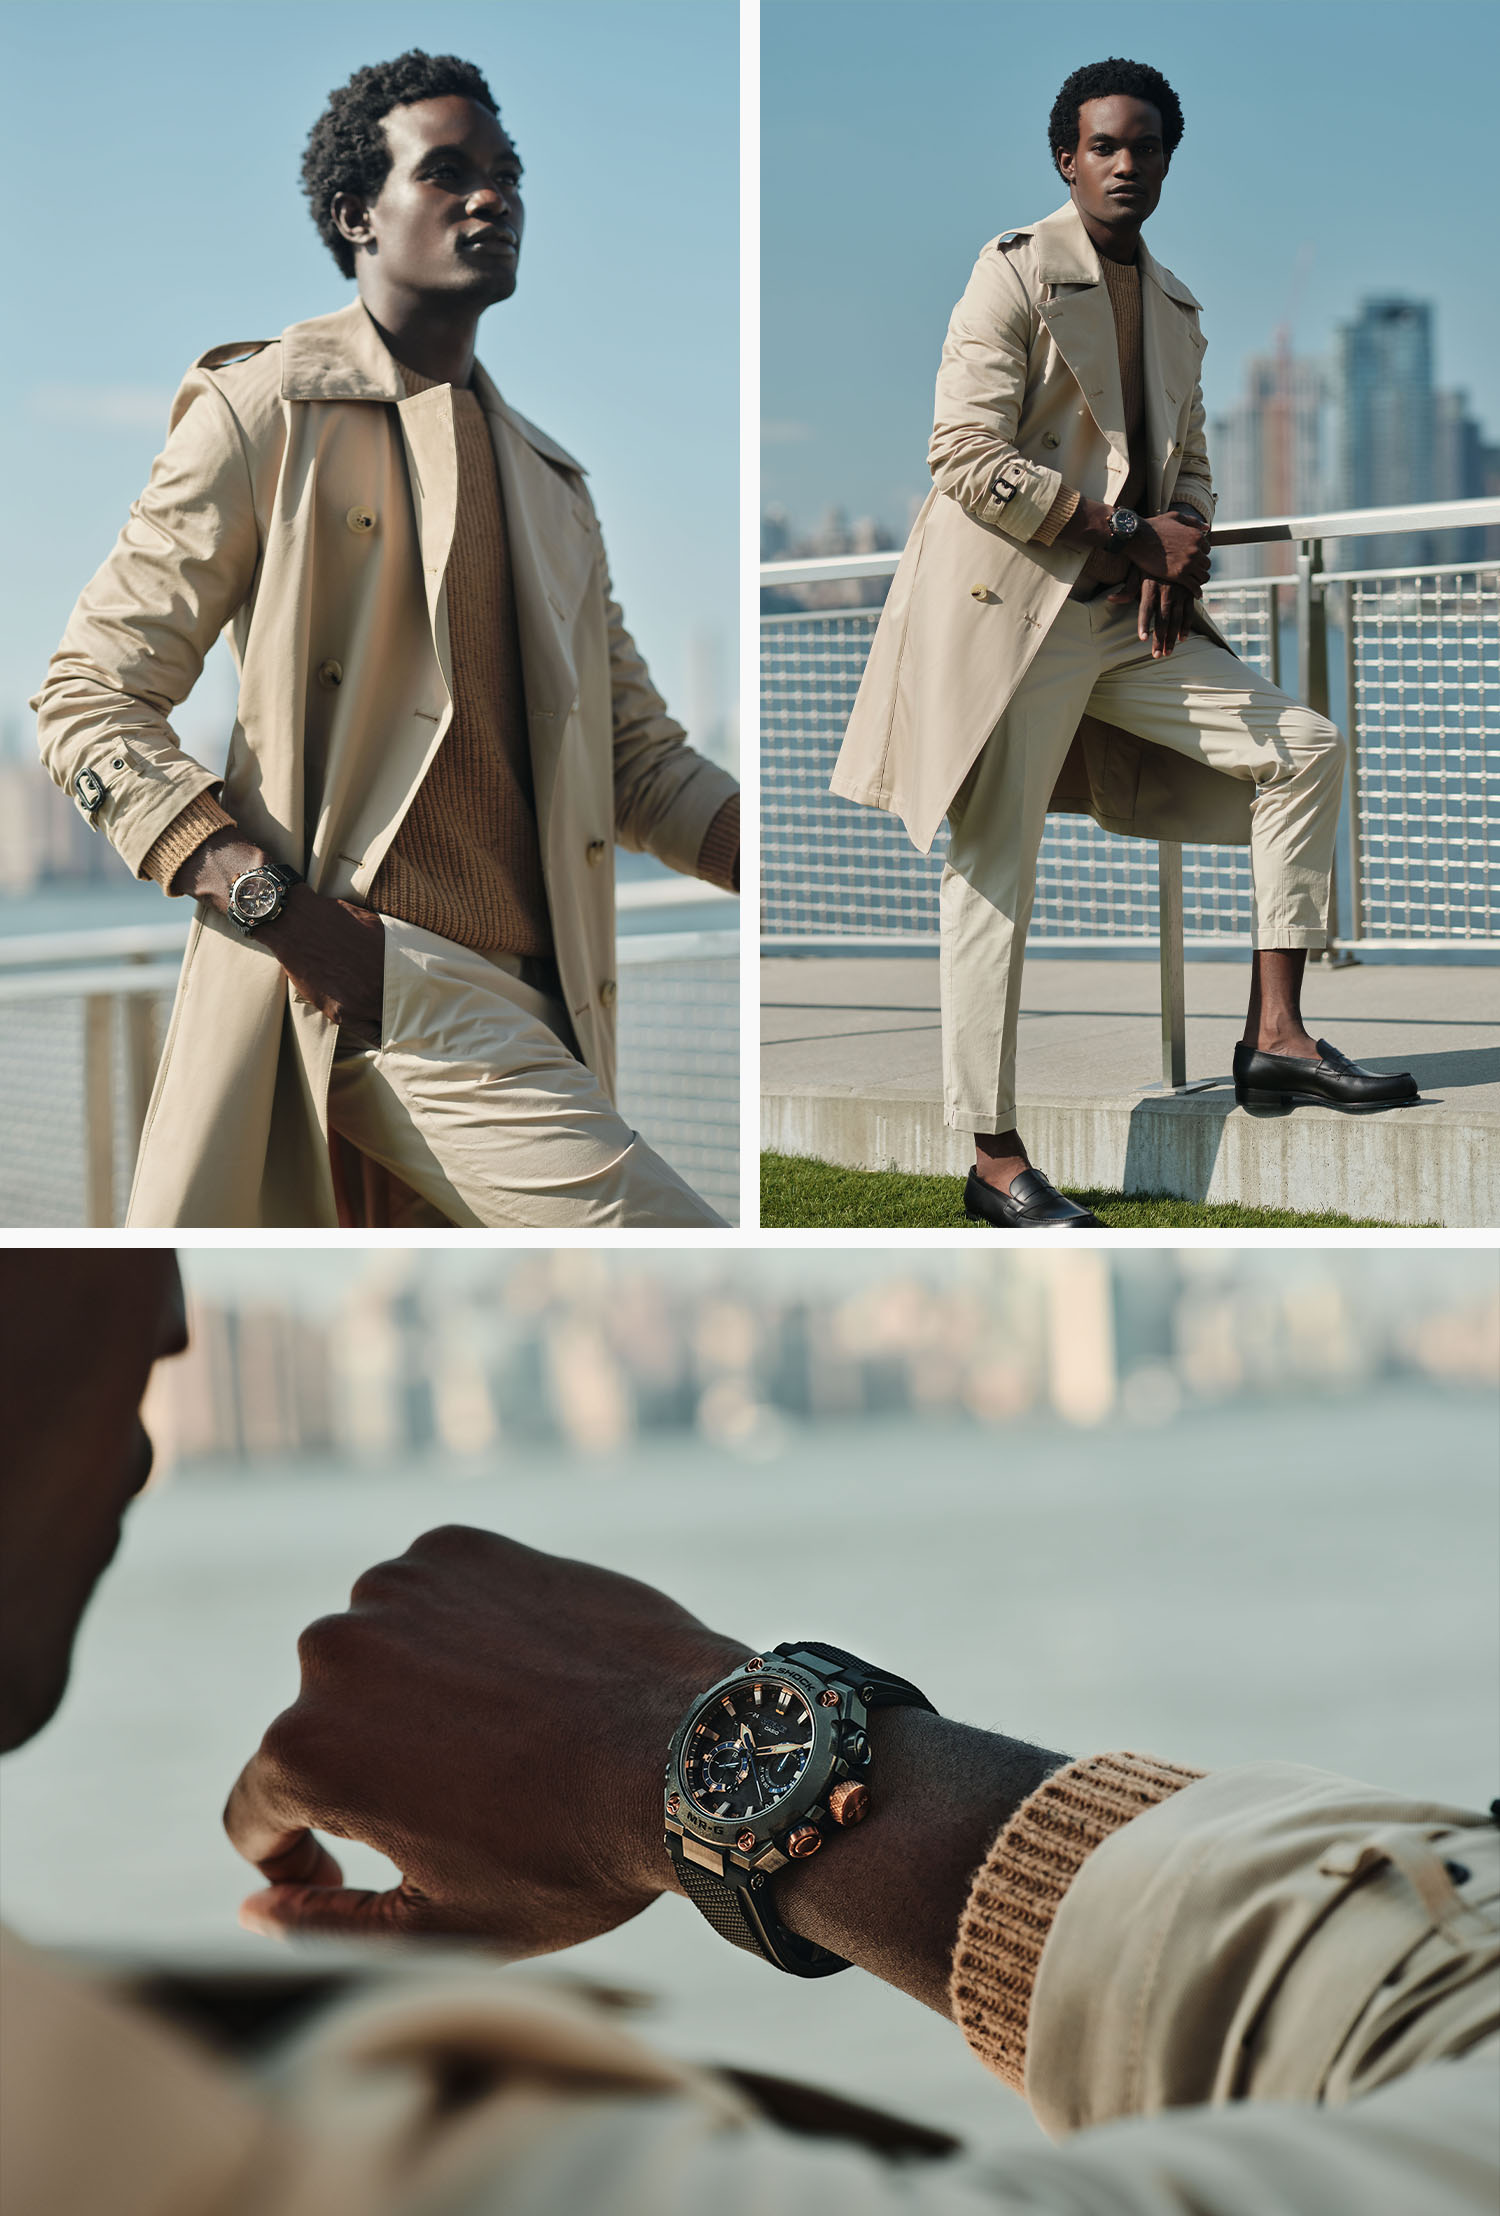 handsome man at a pier with the east river and manhattan behind him, wearing a tan trenchcoat, khaki slacks and a dark khaki sweater with a casio g shock watch